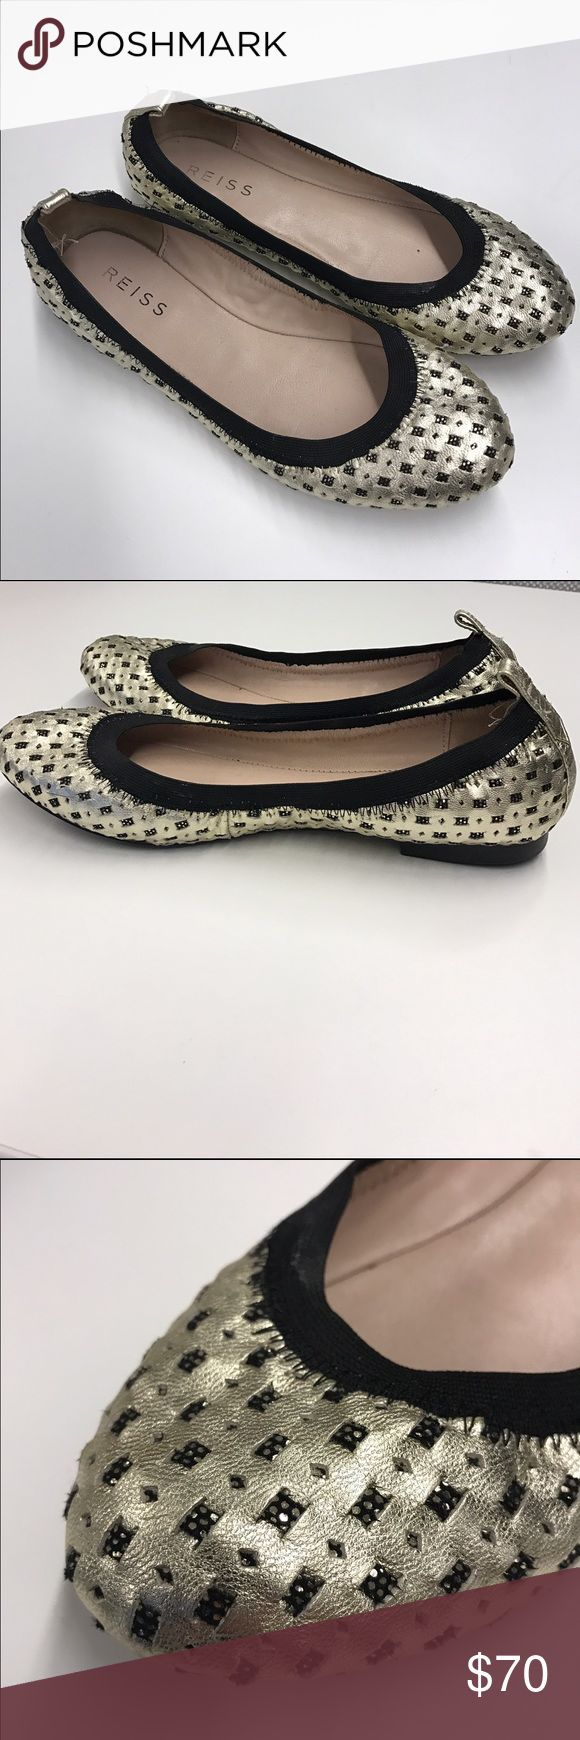 REISS Gold Flats Reiss gold flats. Designed with a softly padded sole that has comfort at its core, the gold flat shoes are a beautifully wearable option that work both in the office and on the weekend. They have a soft elastic black band around the foot and gold sparkle details that adds a touch of shine to the look.                                                  🌟 Offers accepted!                                               🌟 Bundles accepted…